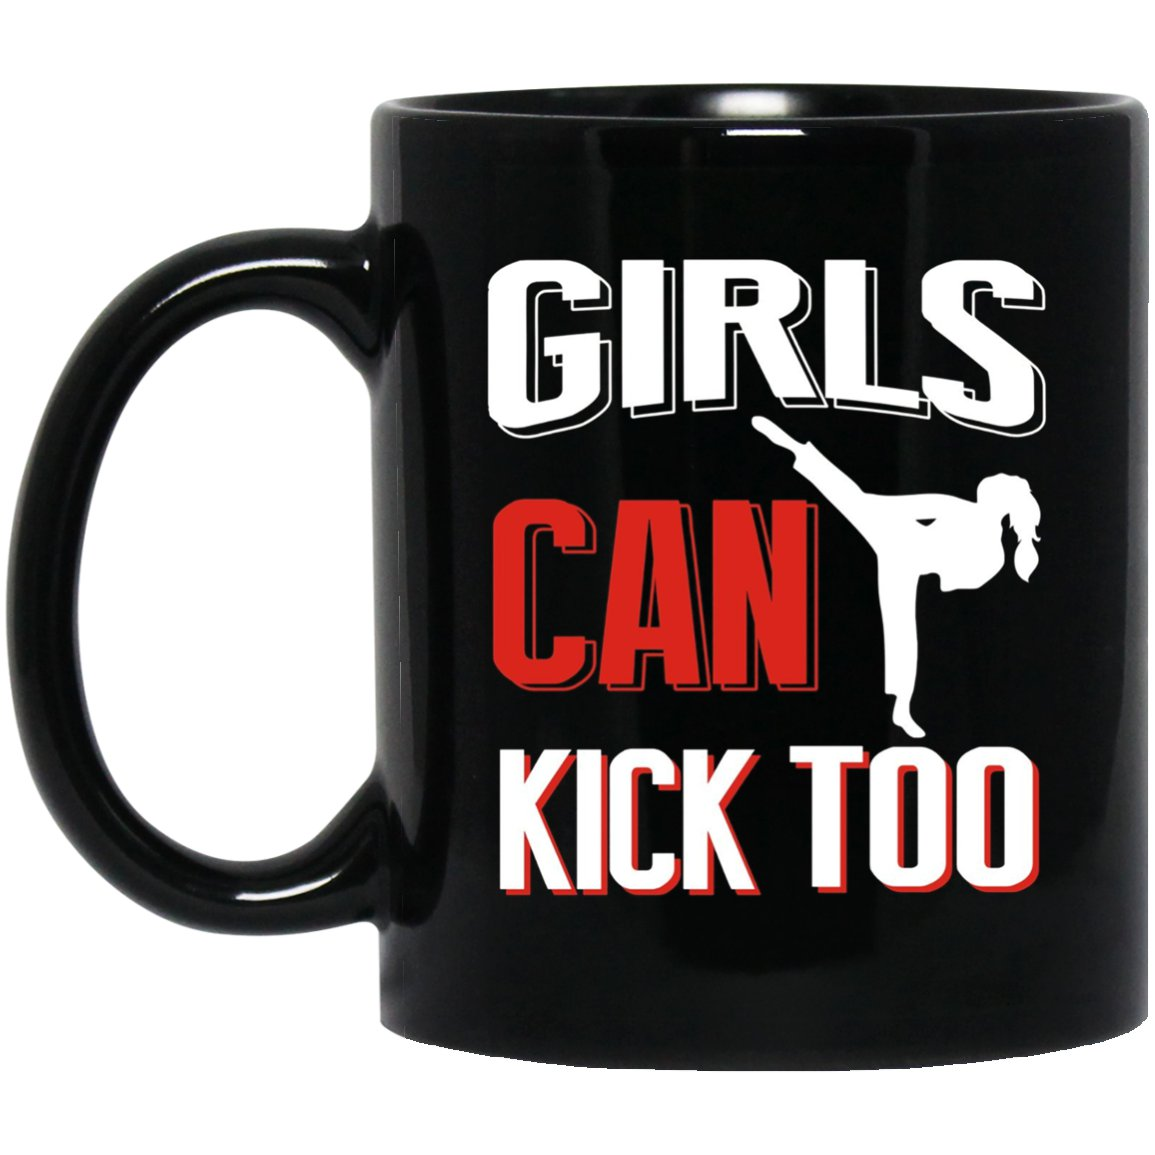 Girls Can Kick Too Karate Taekwondo T Gifts For Girls Black  Mug Black Ceramic 11oz Coffee Tea Cup